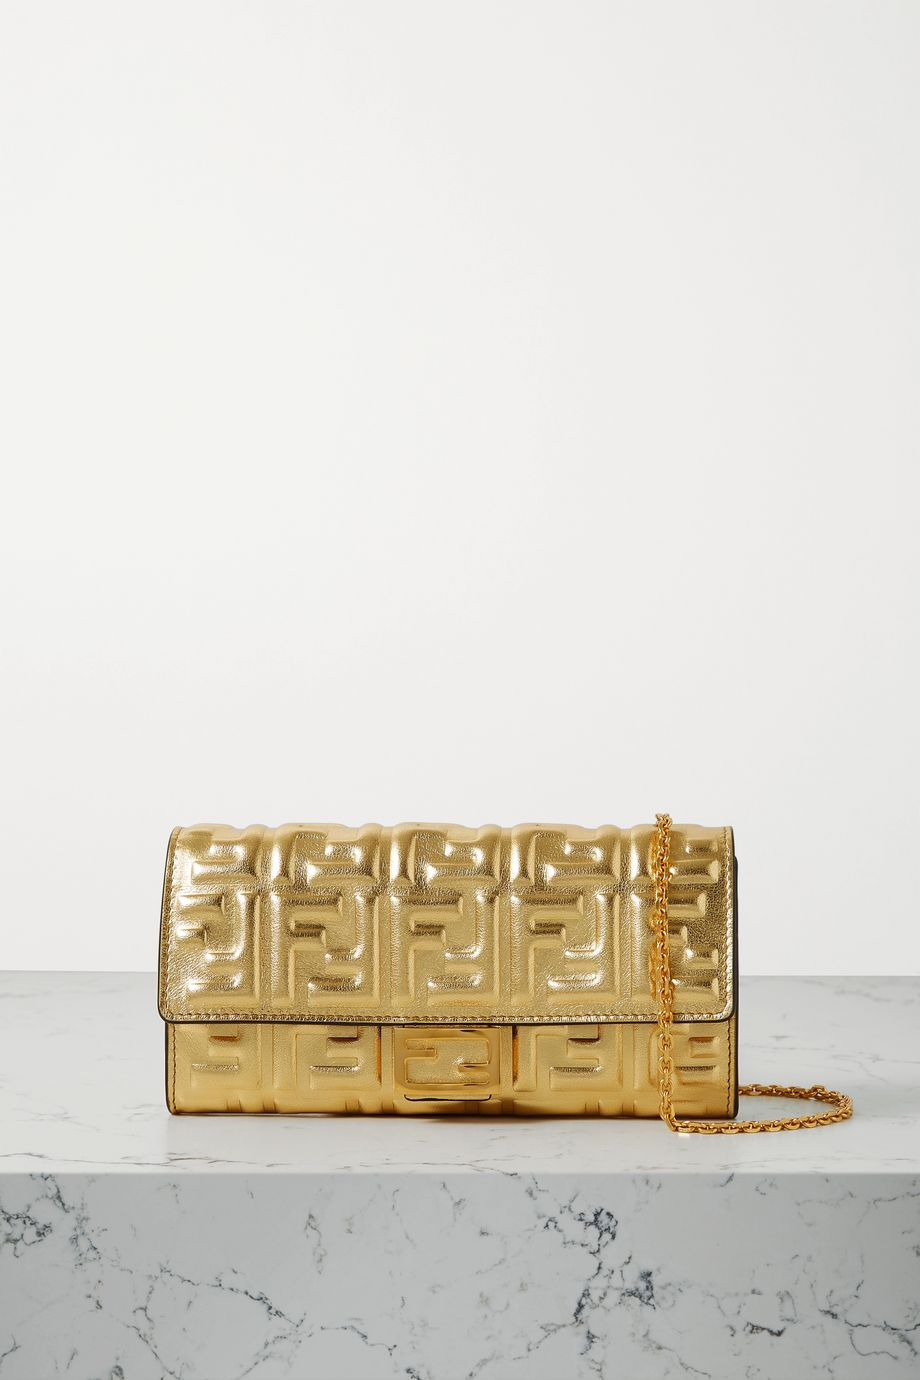 FENDI Baguette embossed metallic leather clutch